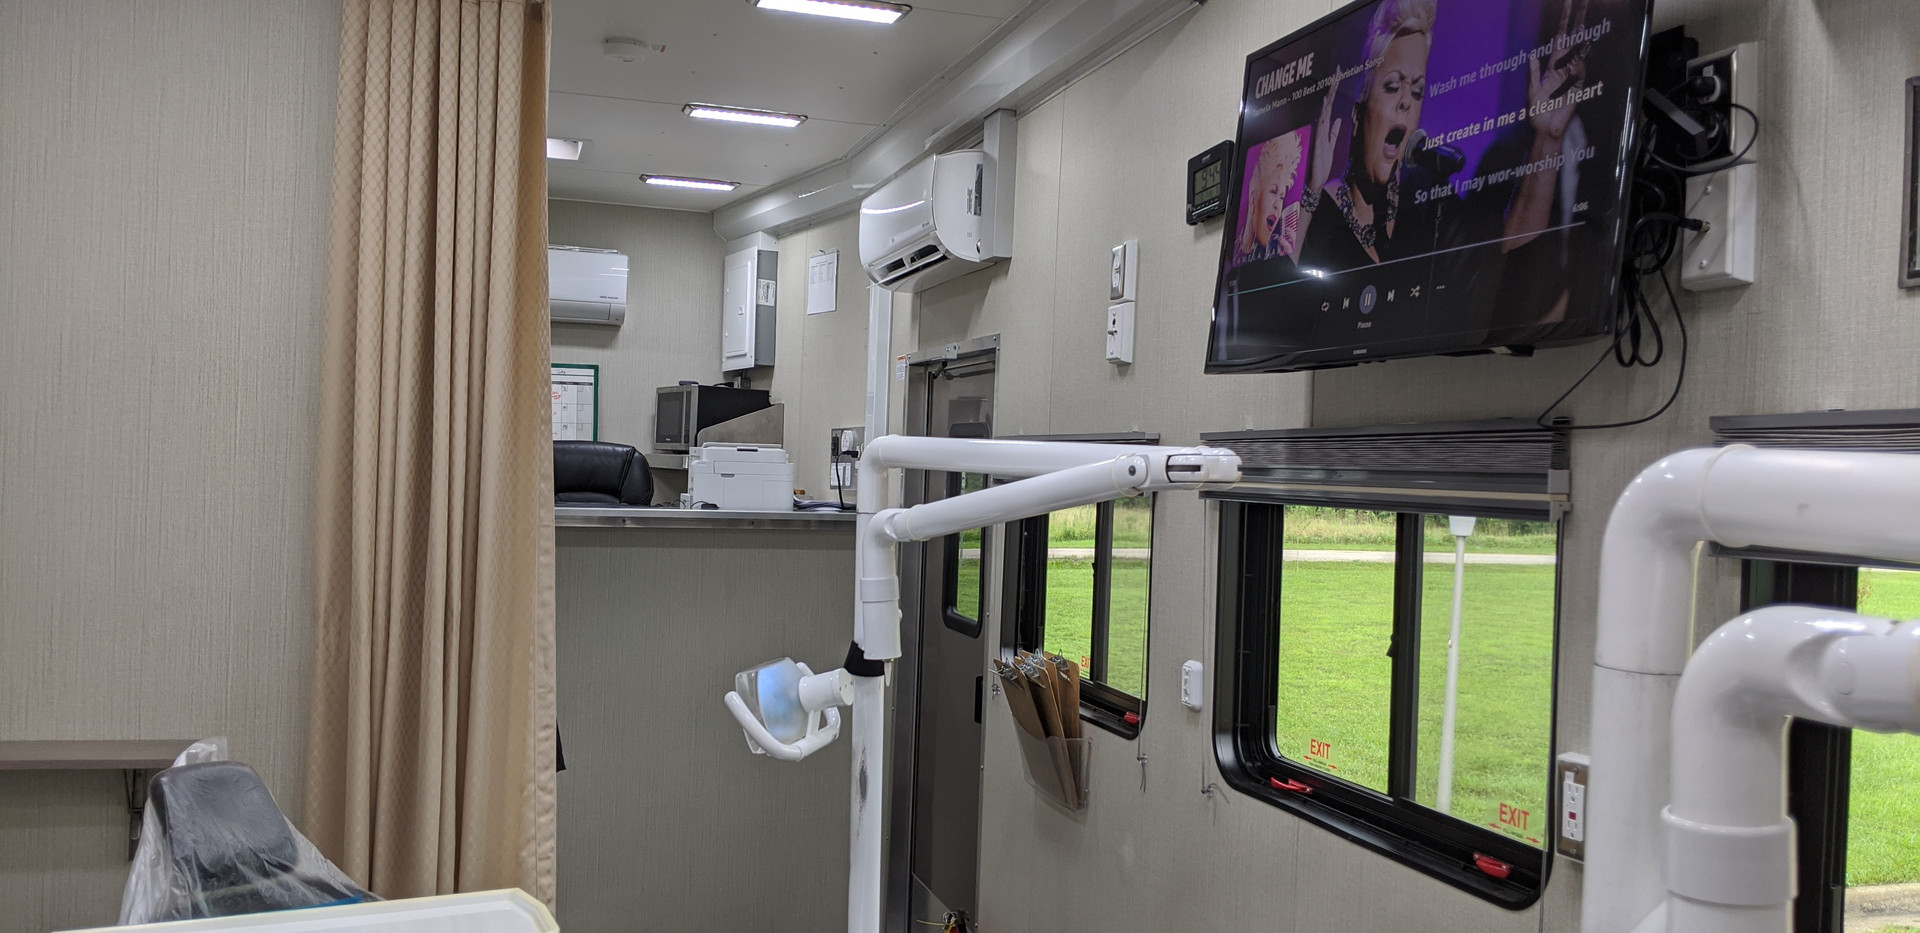 The Mobile Dentistry's Interior